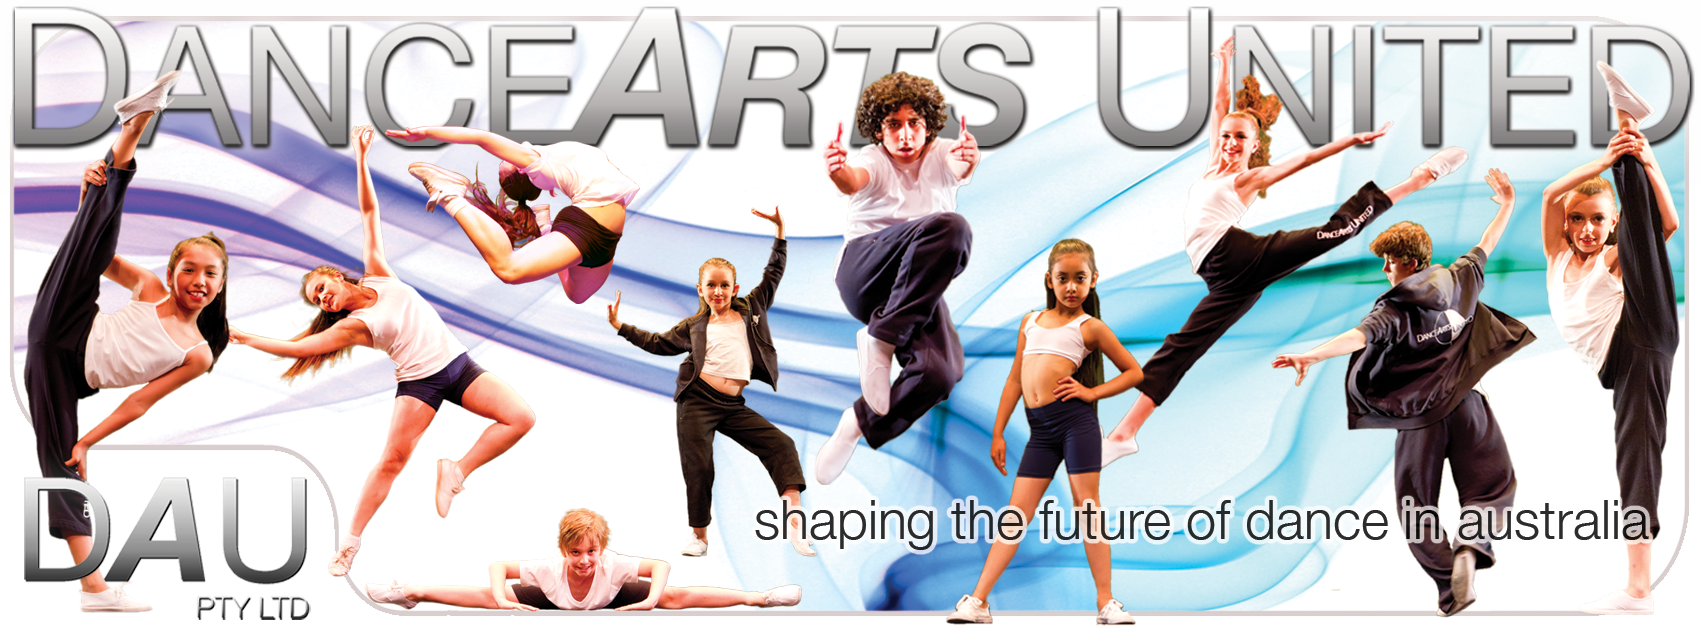 Facebook Cover Image DanceArts United 2013